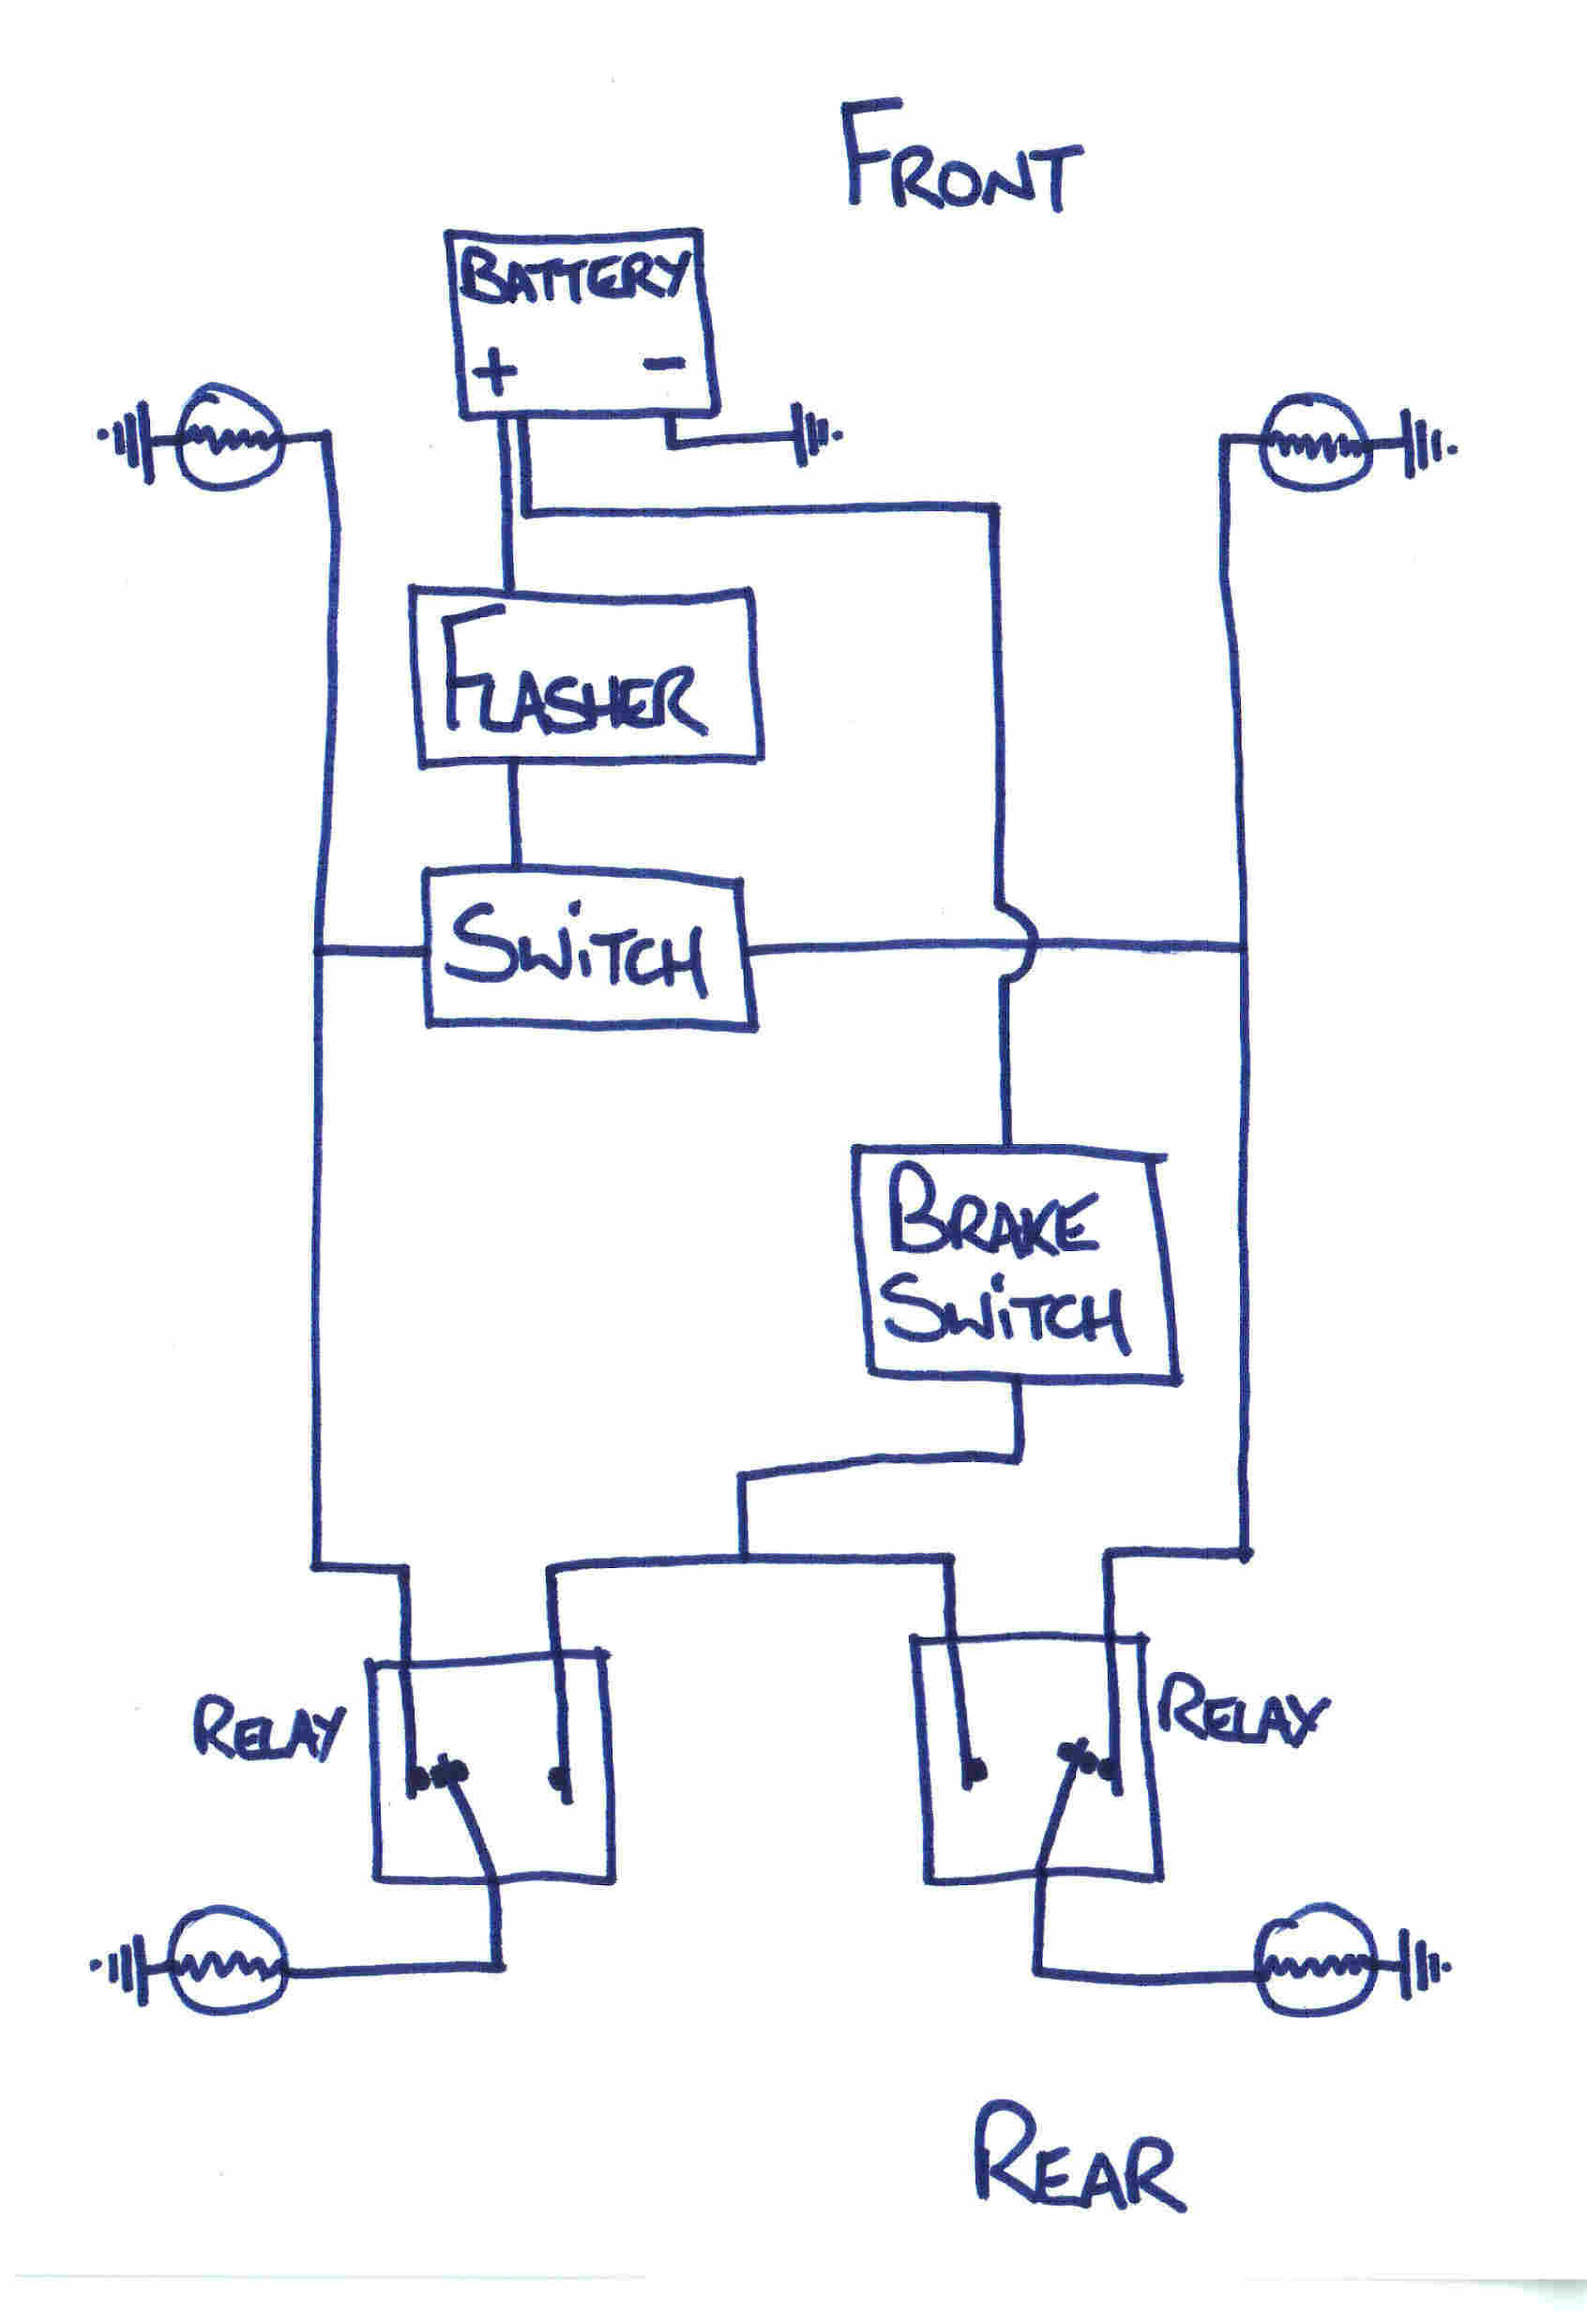 garys_flashers modern flasher circuits simple indicator wiring diagram at gsmx.co